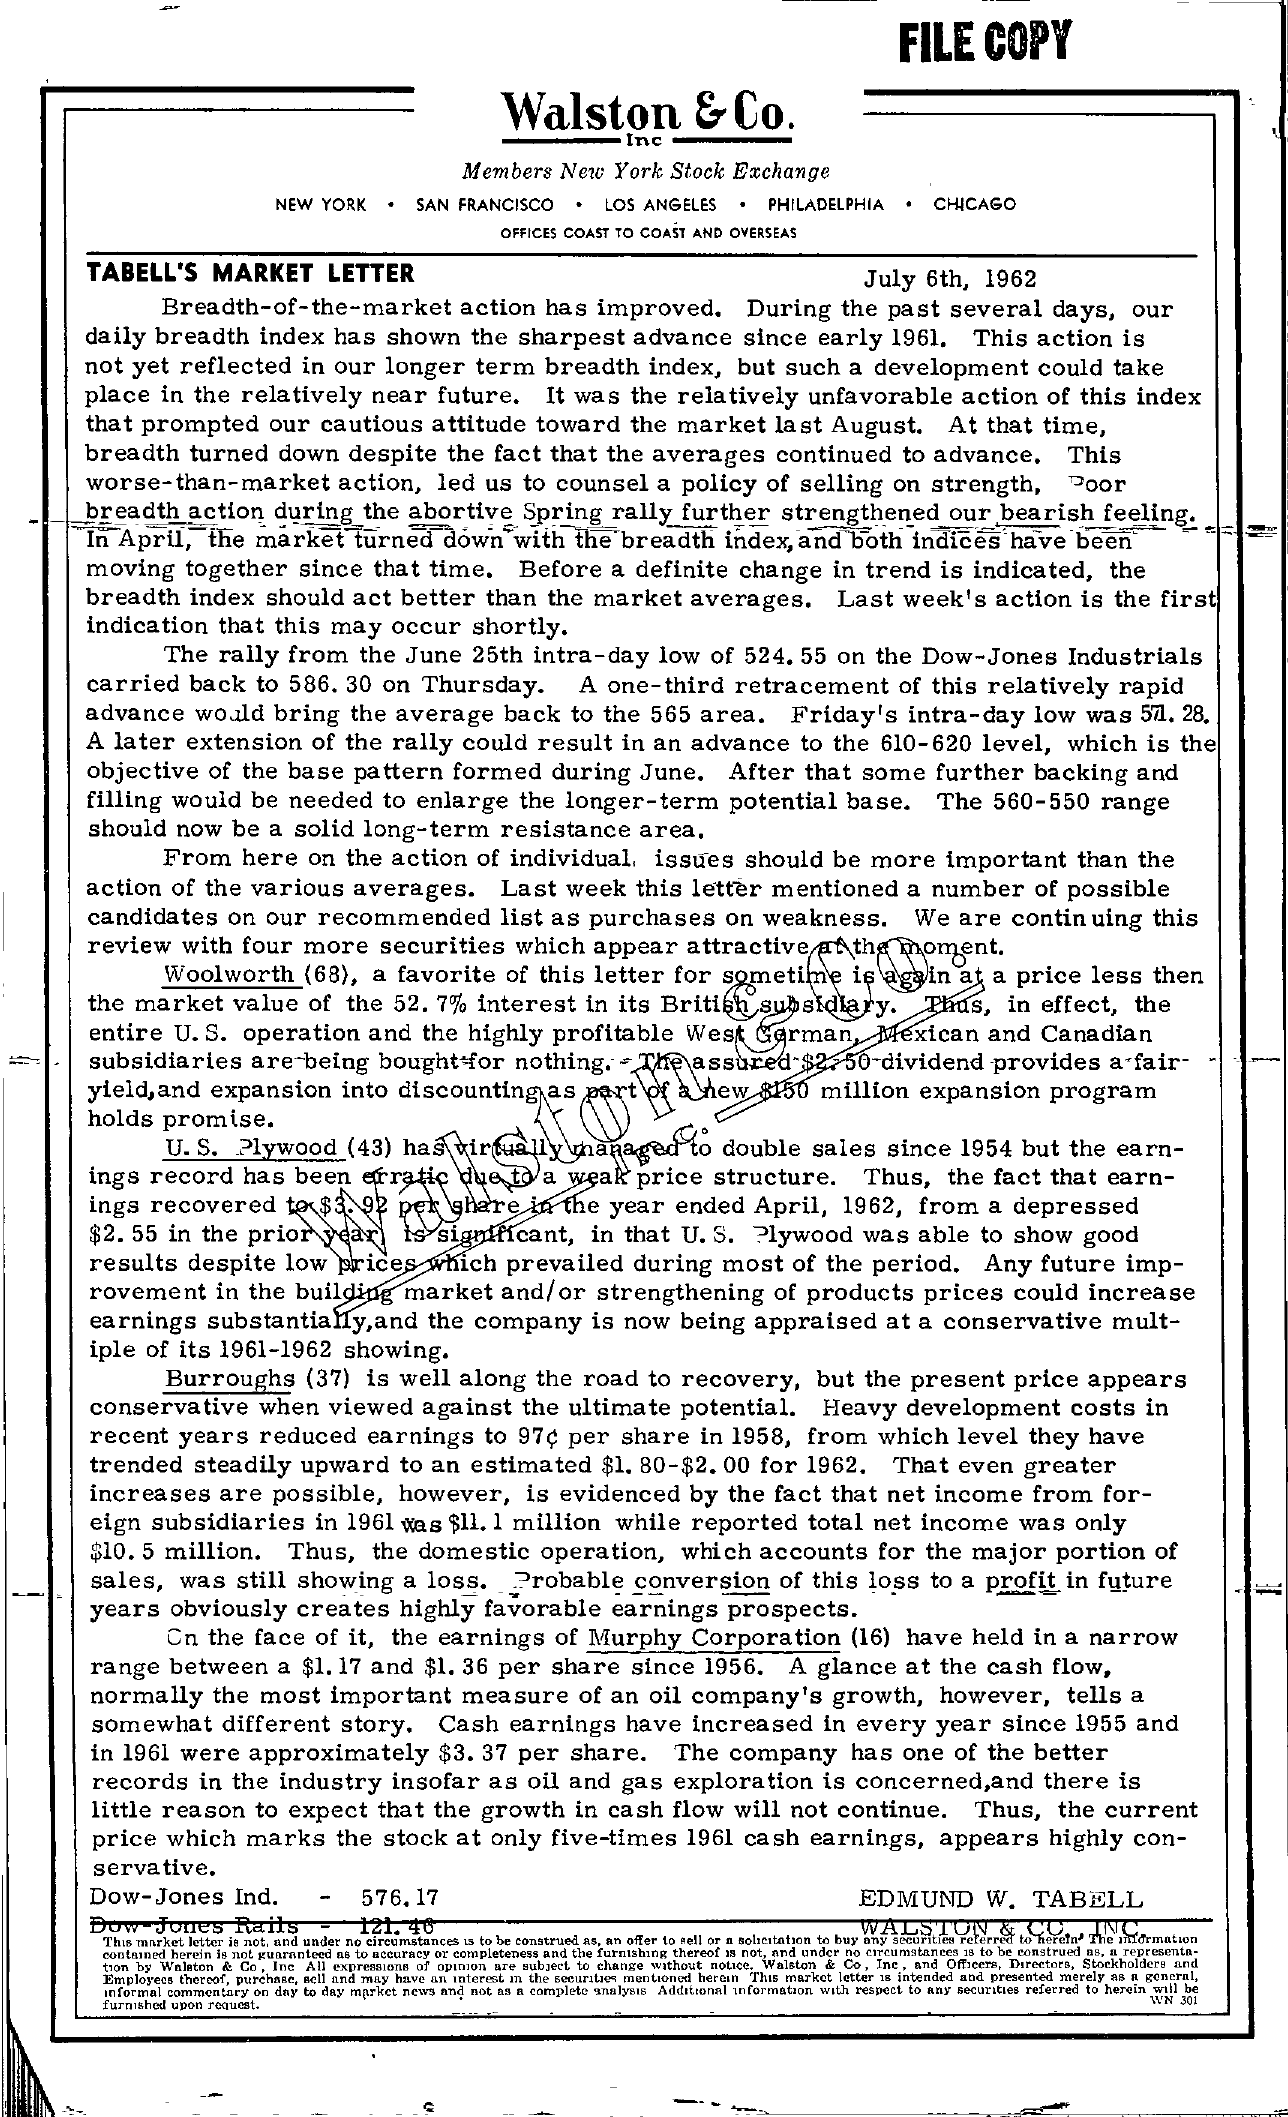 Tabell's Market Letter - July 06, 1962